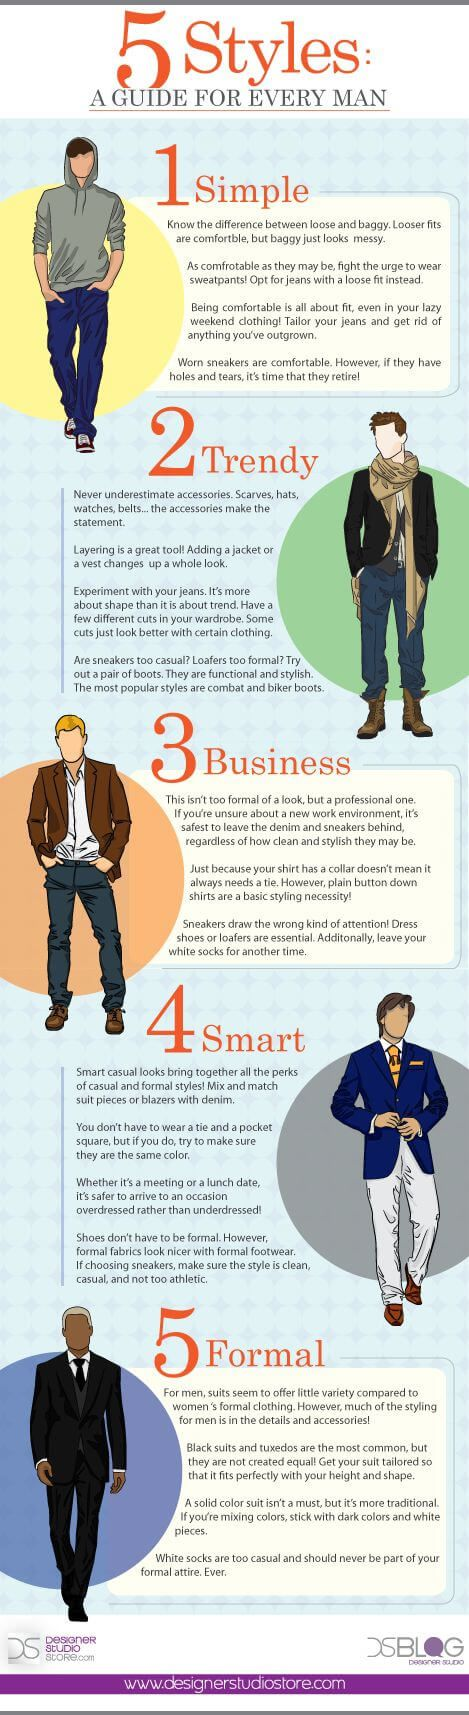 Image titled 'Tips to Dress Well in 5 Essential Men's Styles'